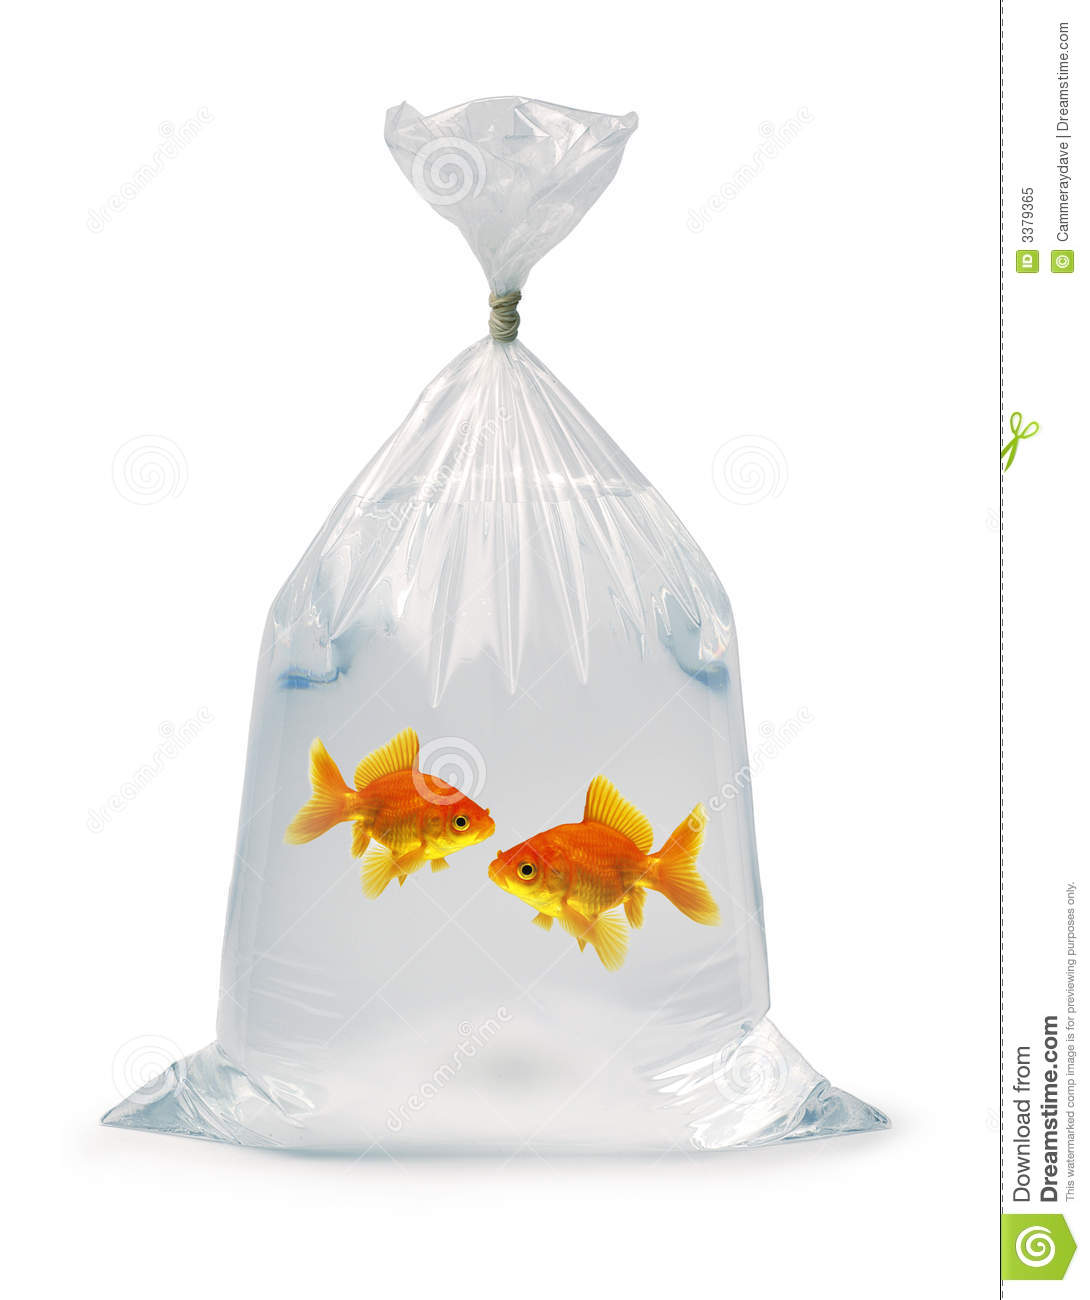 Two Goldfish In A Bag Royalty Free Stock Photo - Image: 3379365